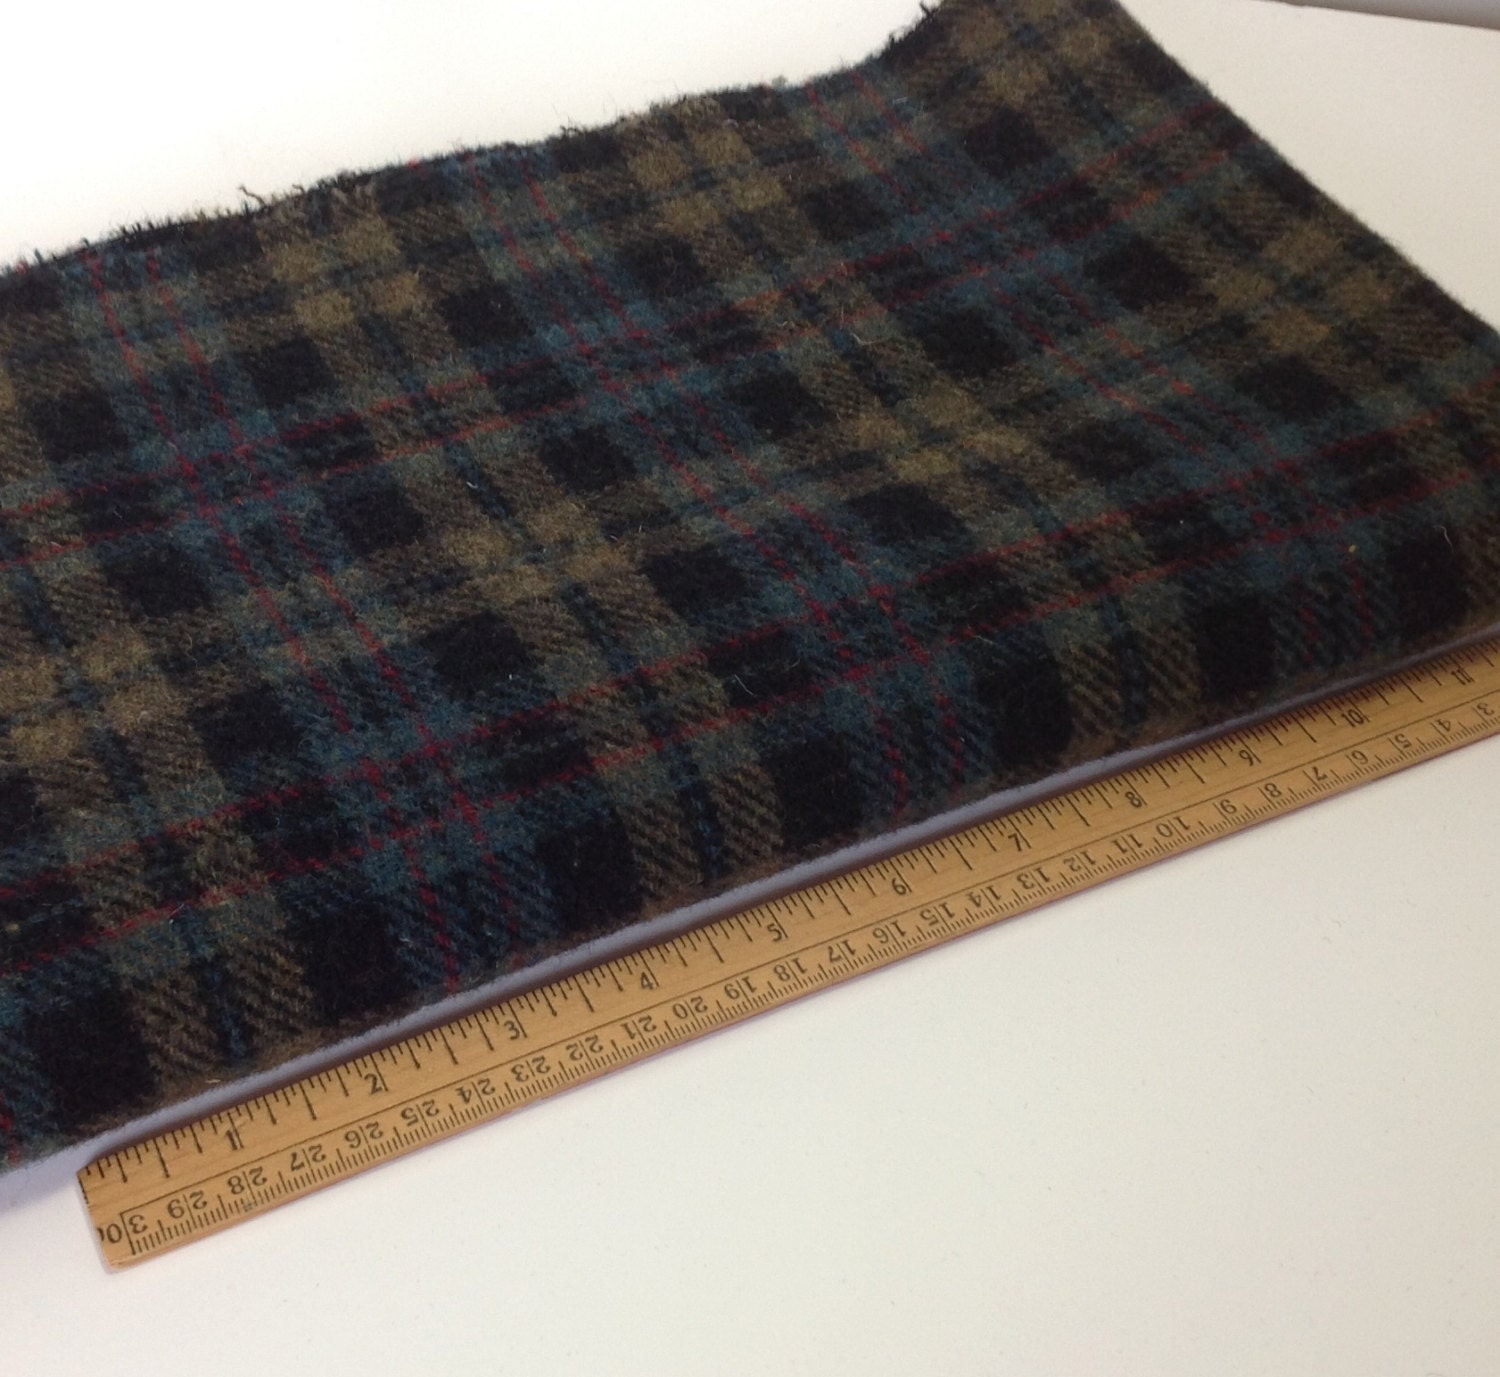 Gemstone Plaid Wool For Rug Hooking And Applique 1/2 Yard Or